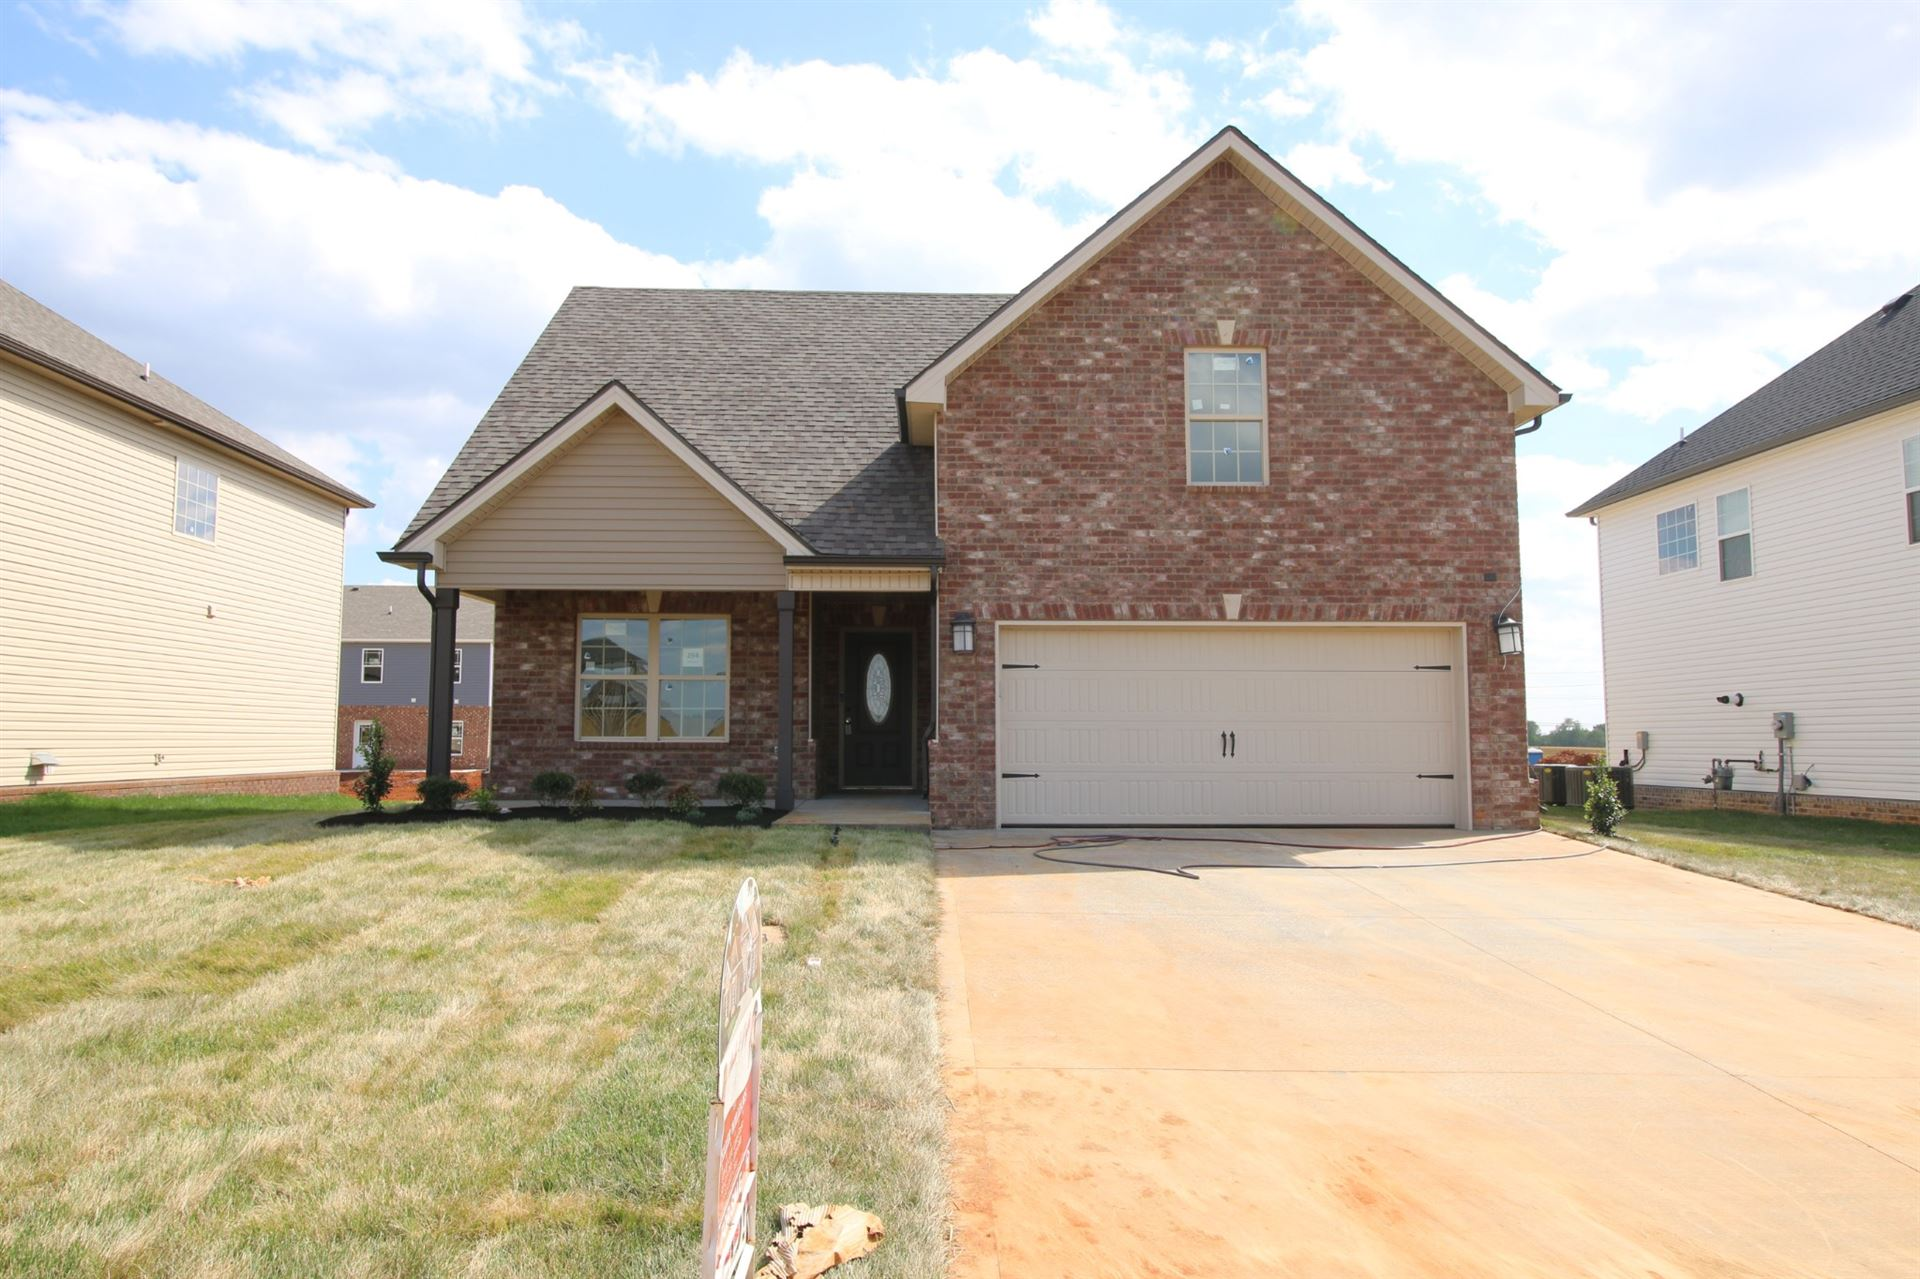 294 Summerfield, Clarksville, TN 37040 - MLS#: 2217396